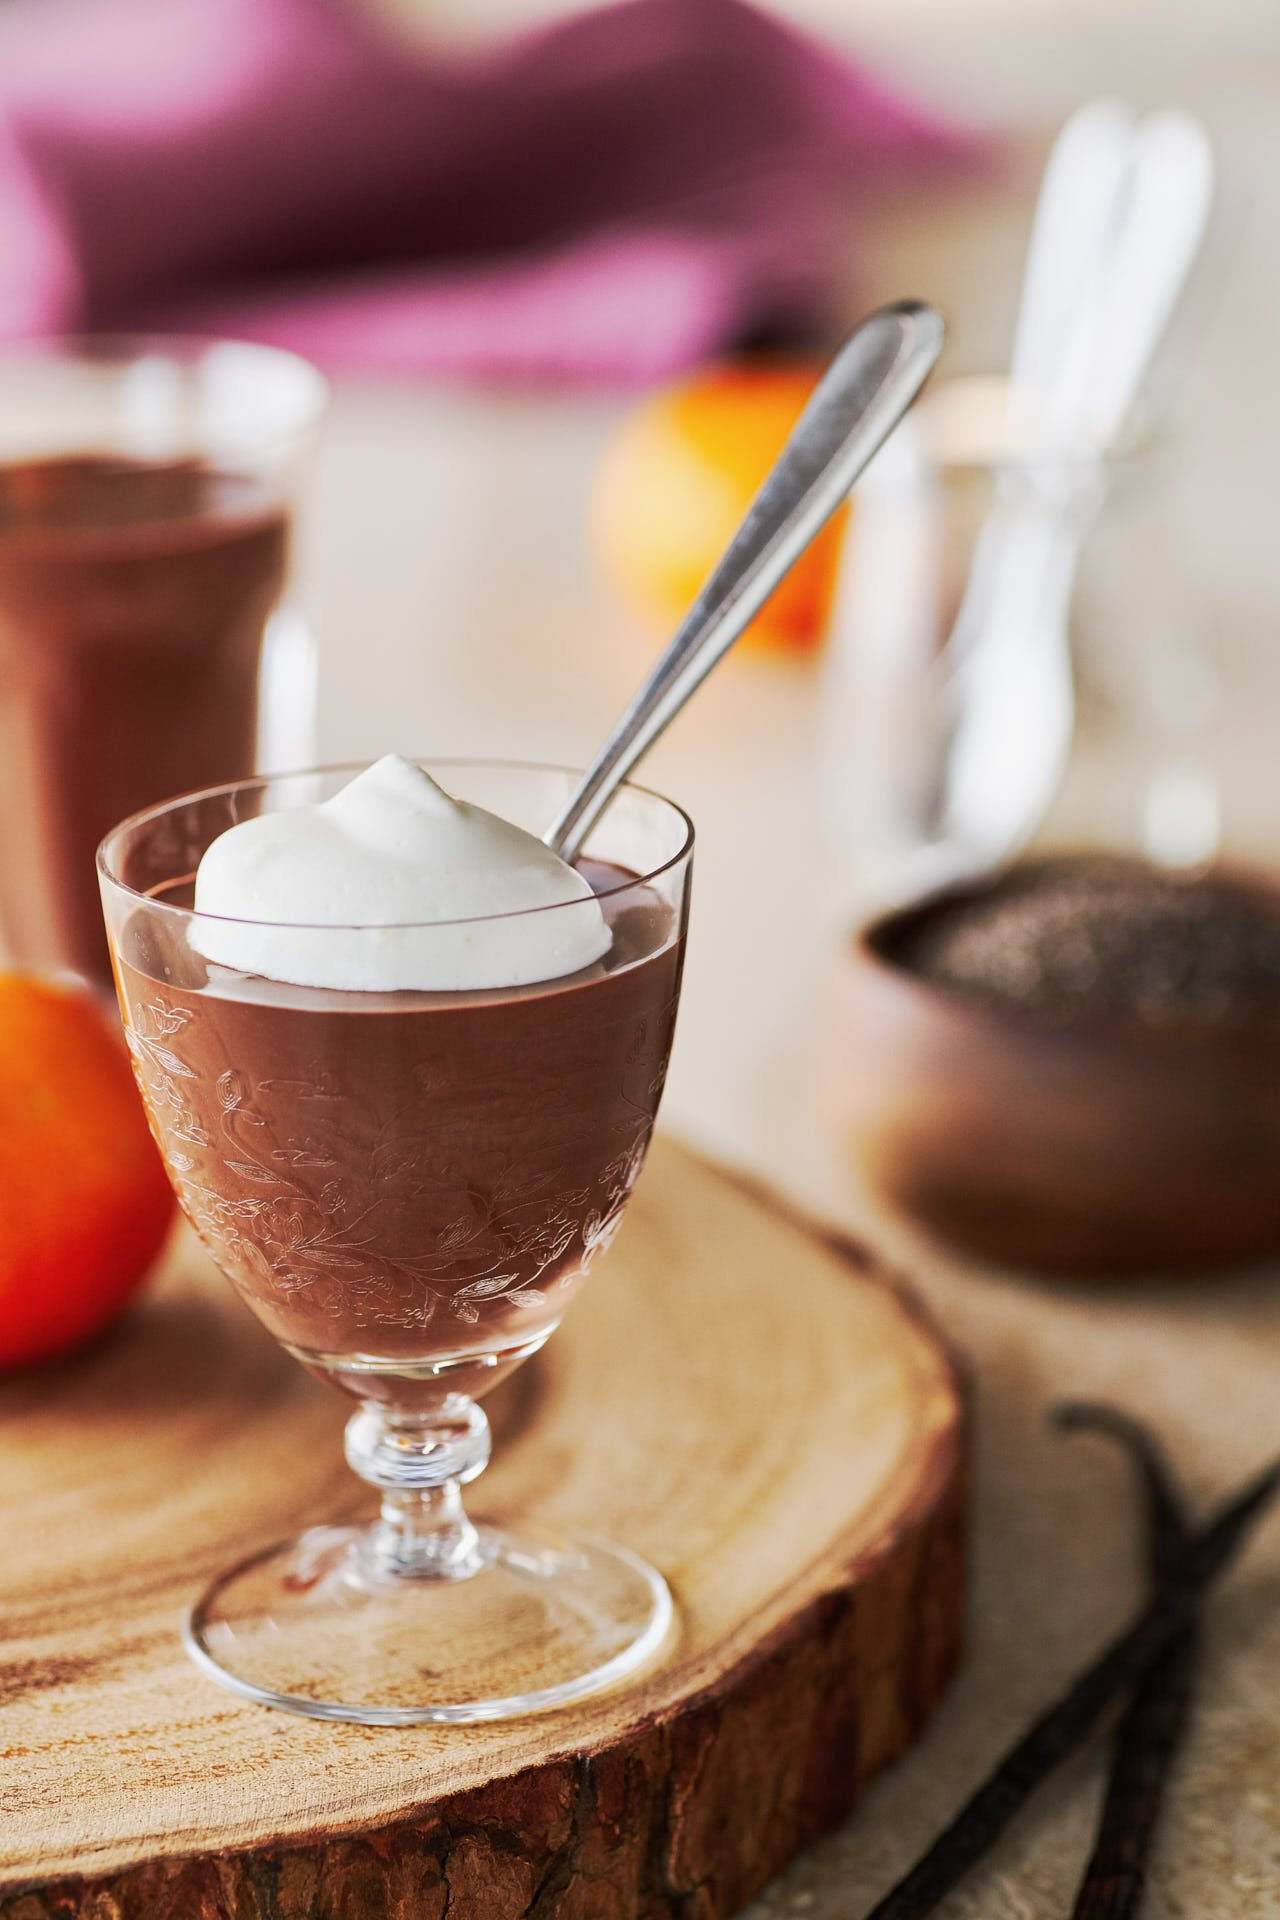 This decadently rich and creamy vegan chocolate pudding comes together from a handful of ingredients in under a minute.